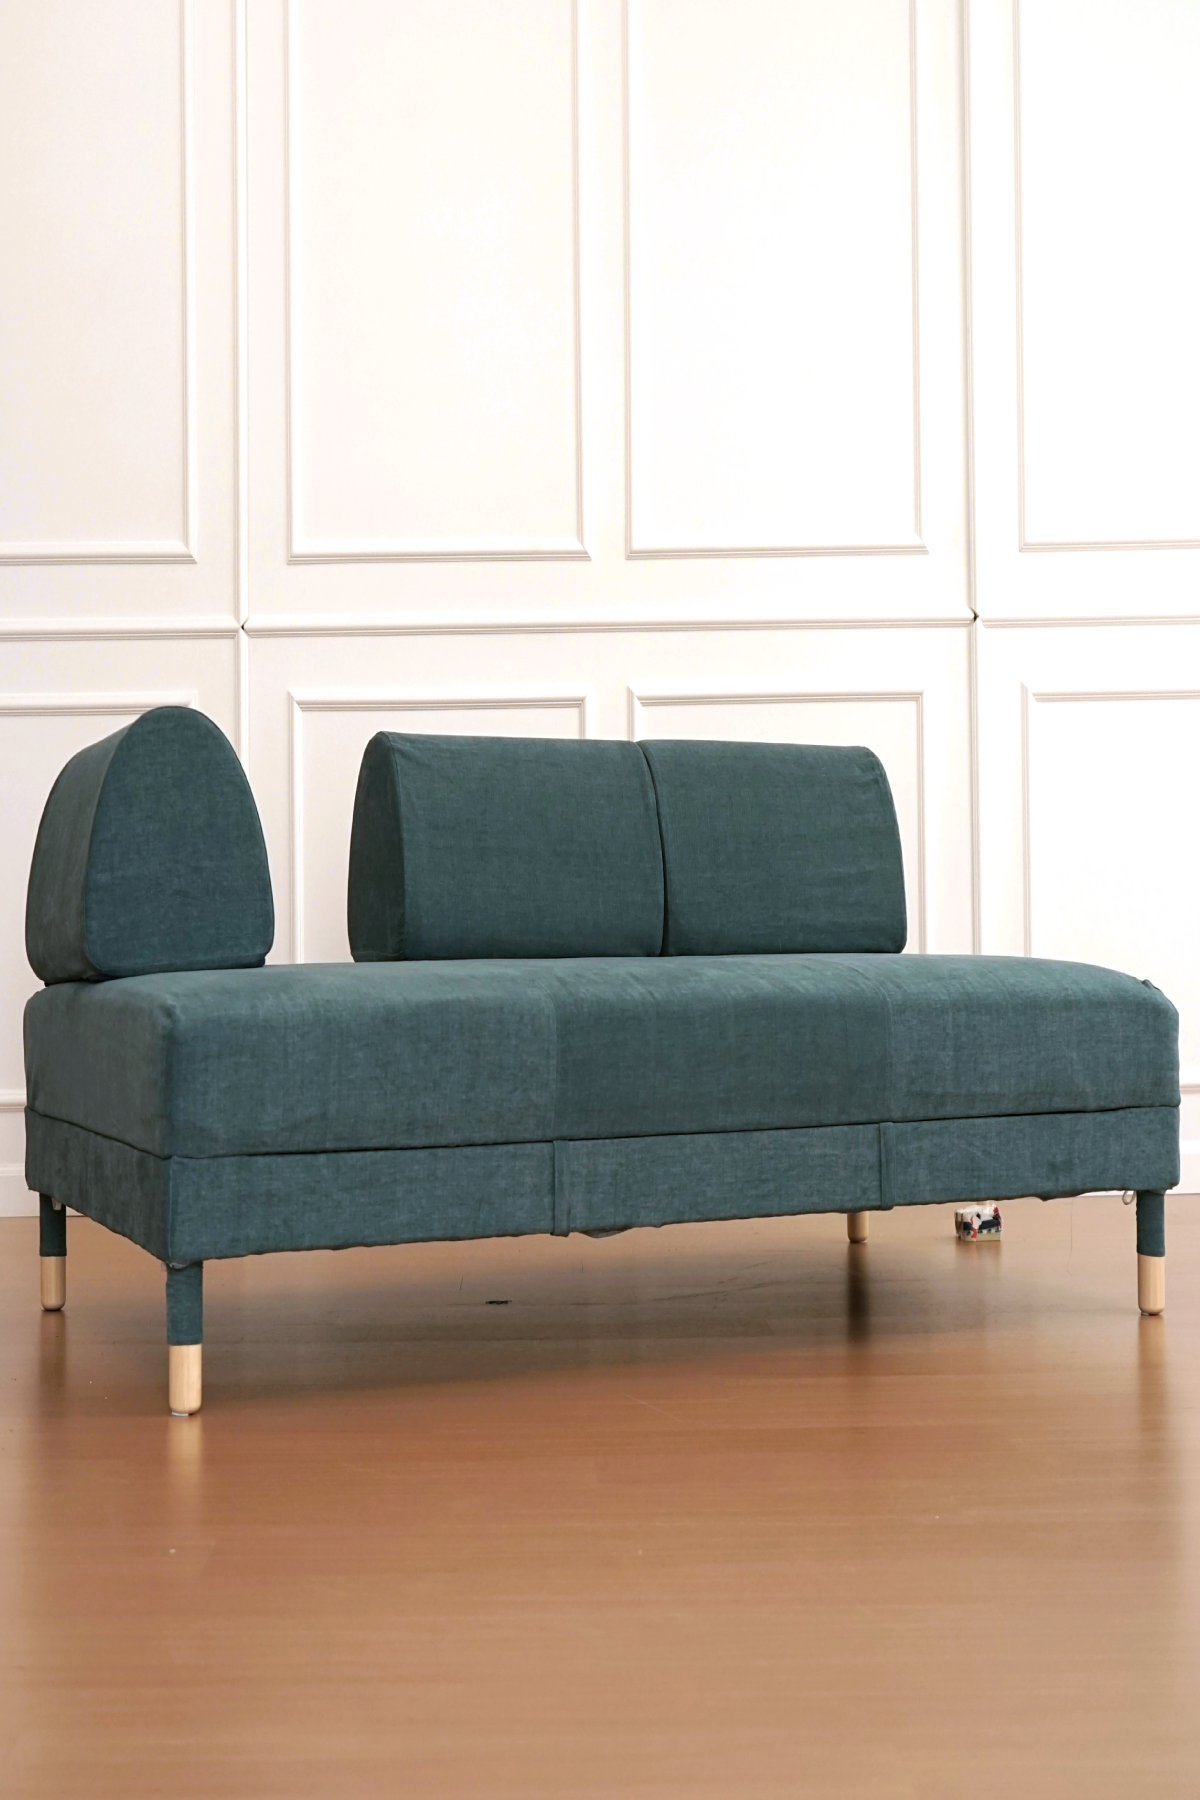 Ikea Flottebo Sofa Bed Review Offbeat Design Unusual Structure